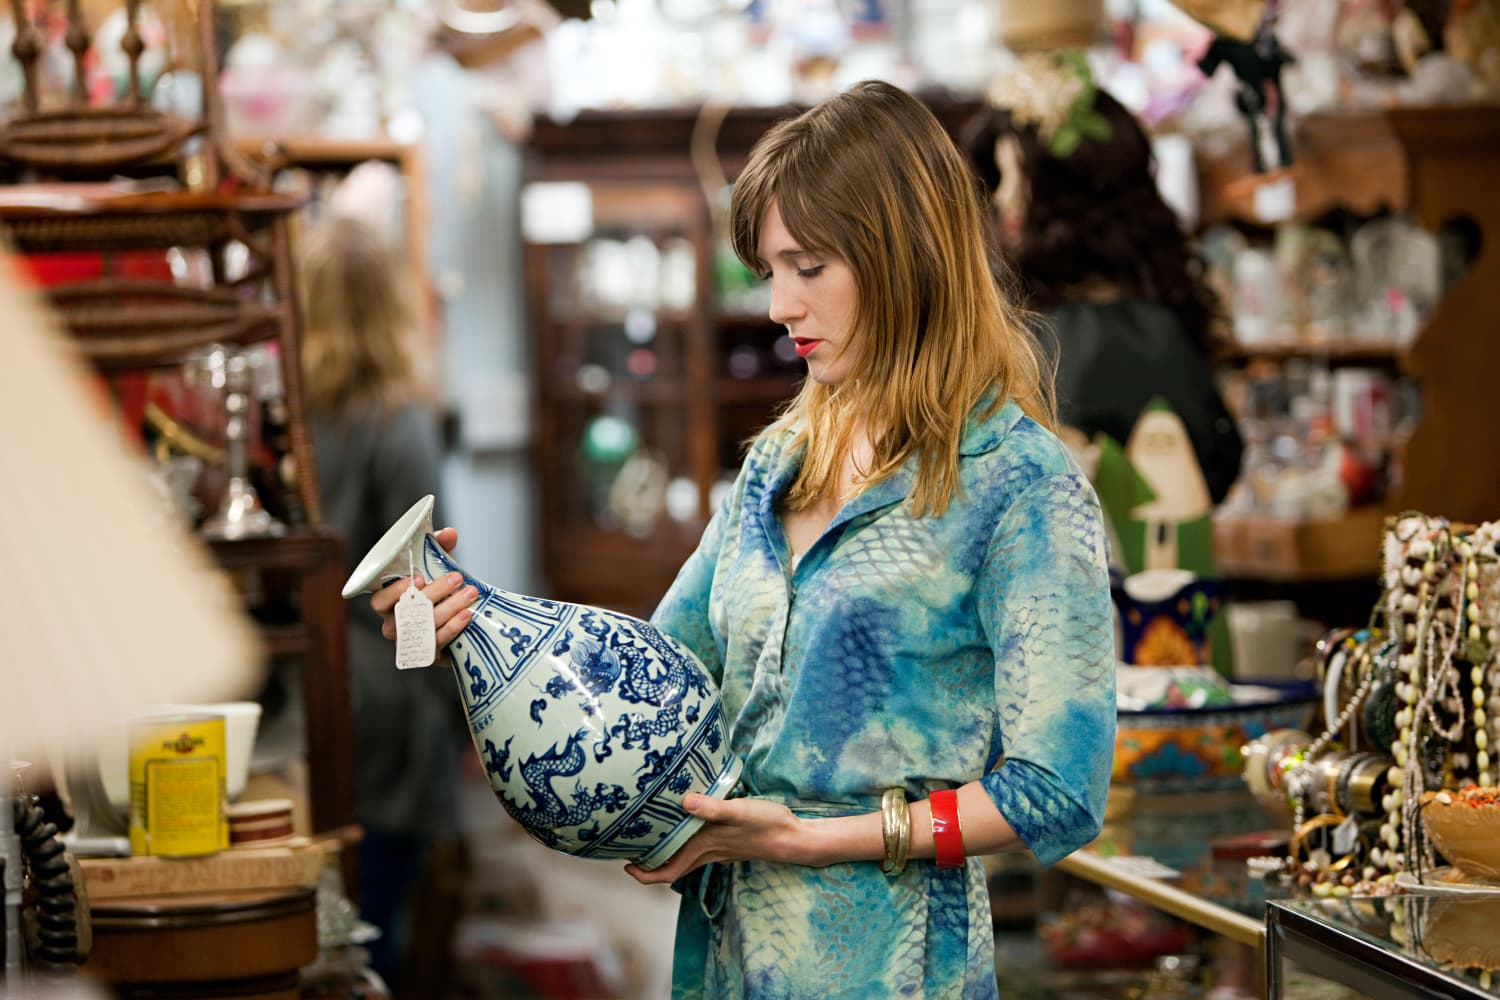 The 6 Most Underrated Items at Goodwill — Especially If You're a Renter